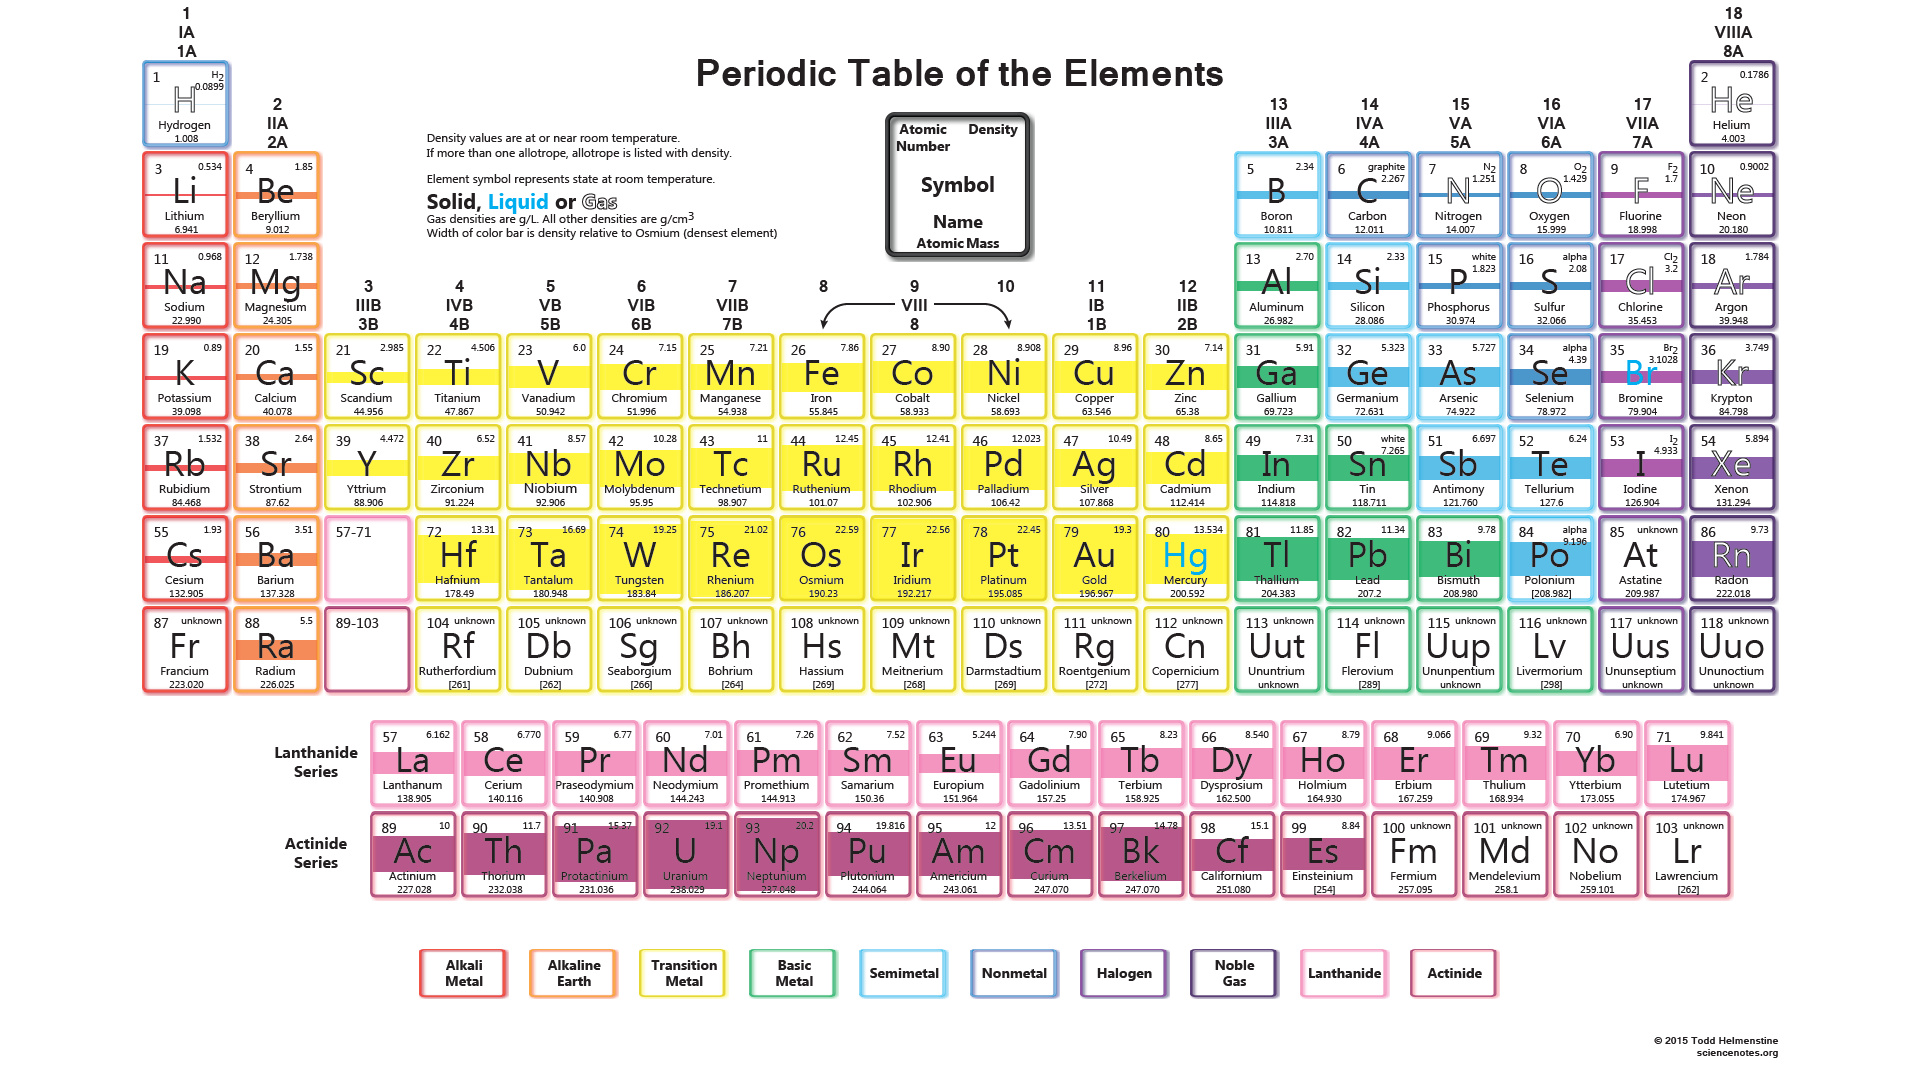 Ucsb science line i found a great periodic table click here that has the density of each element in the top right corner gamestrikefo Images